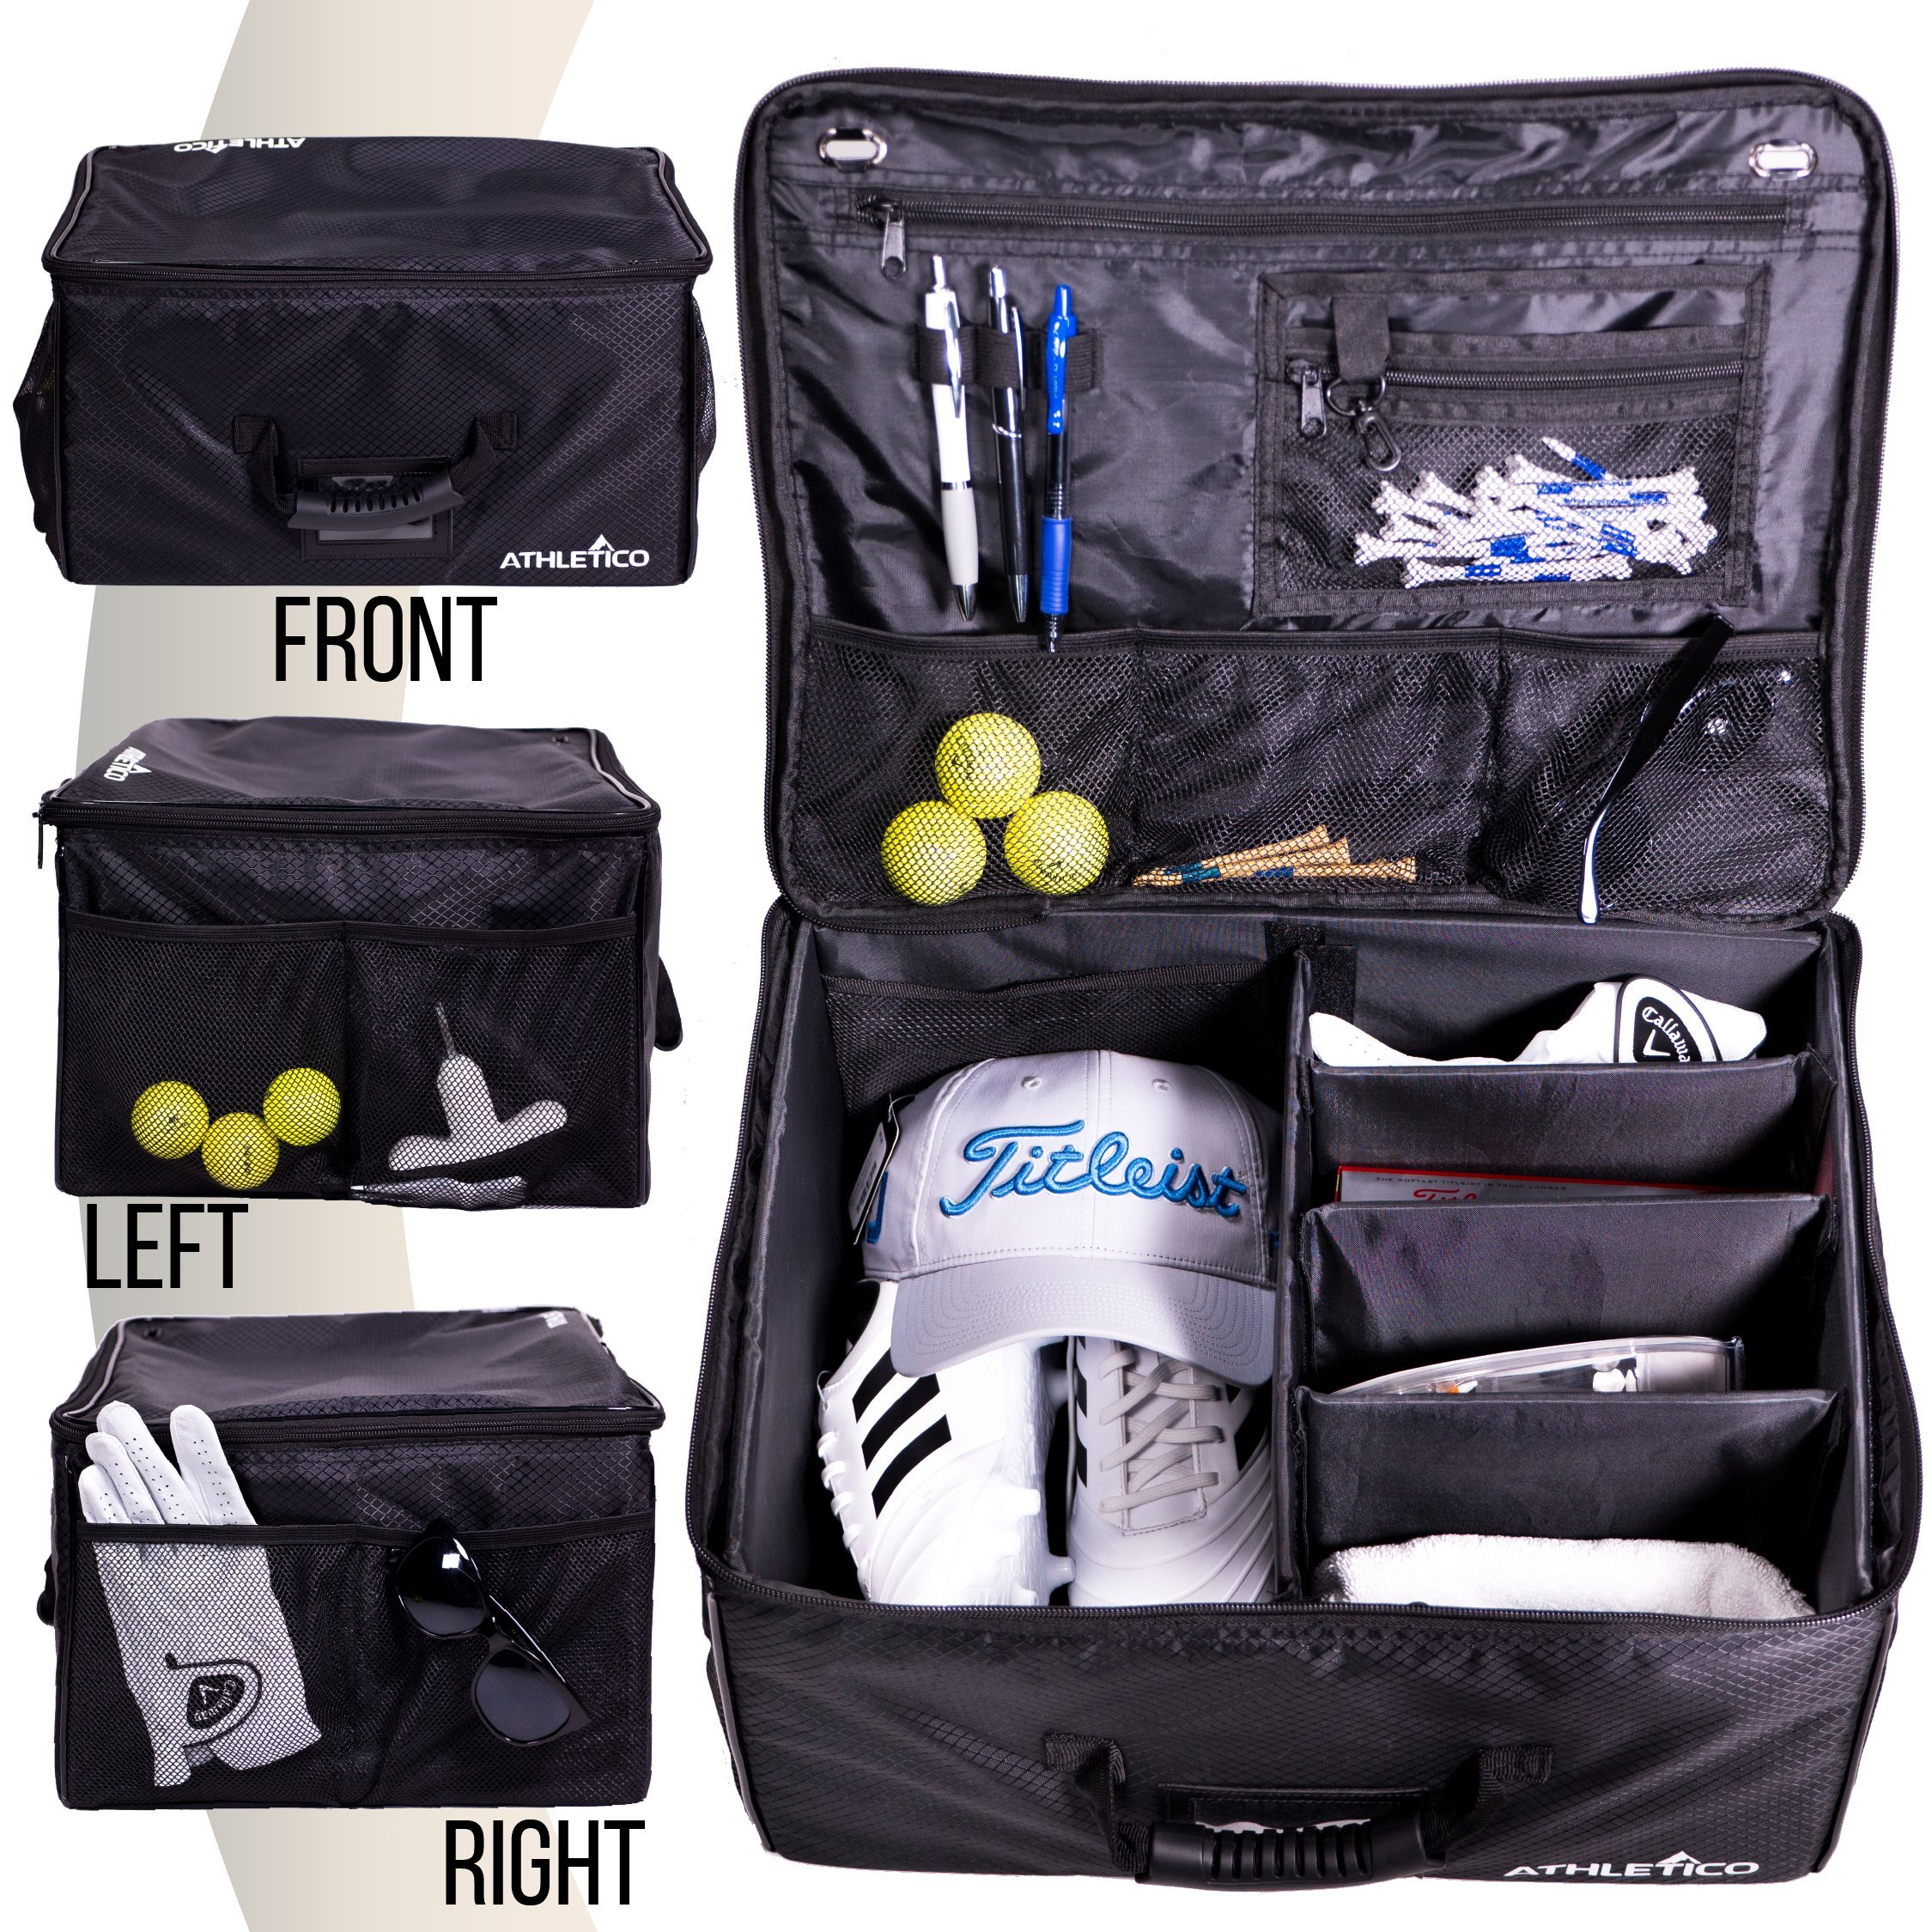 Athletico Golf Trunk Organizer Storage - Car Golf Locker To Store Golf Accessories | Collapsible When Not In Use by Athletico (Image #1)